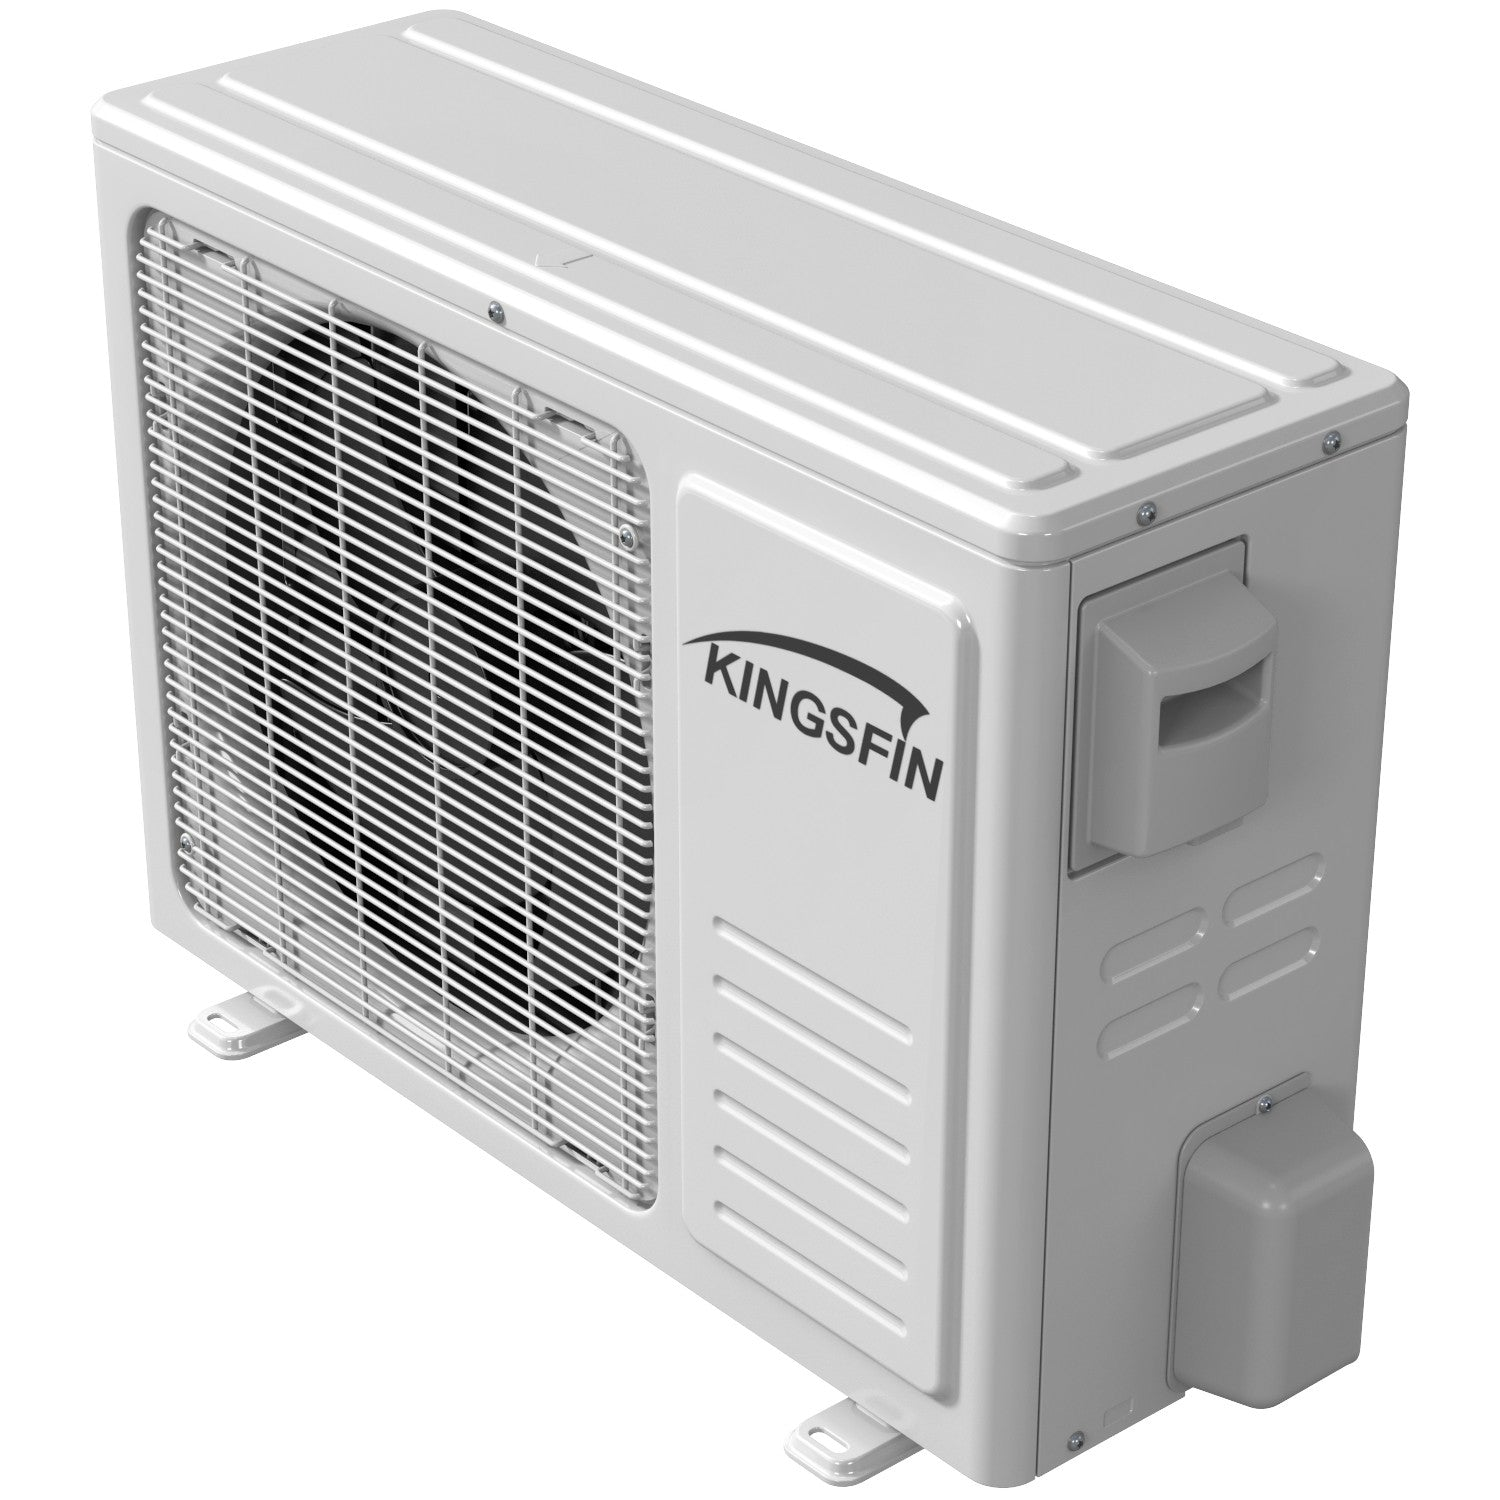 Kingsfin Mini Split Ductless Ac Air Conditioner And Heat Pump 1518